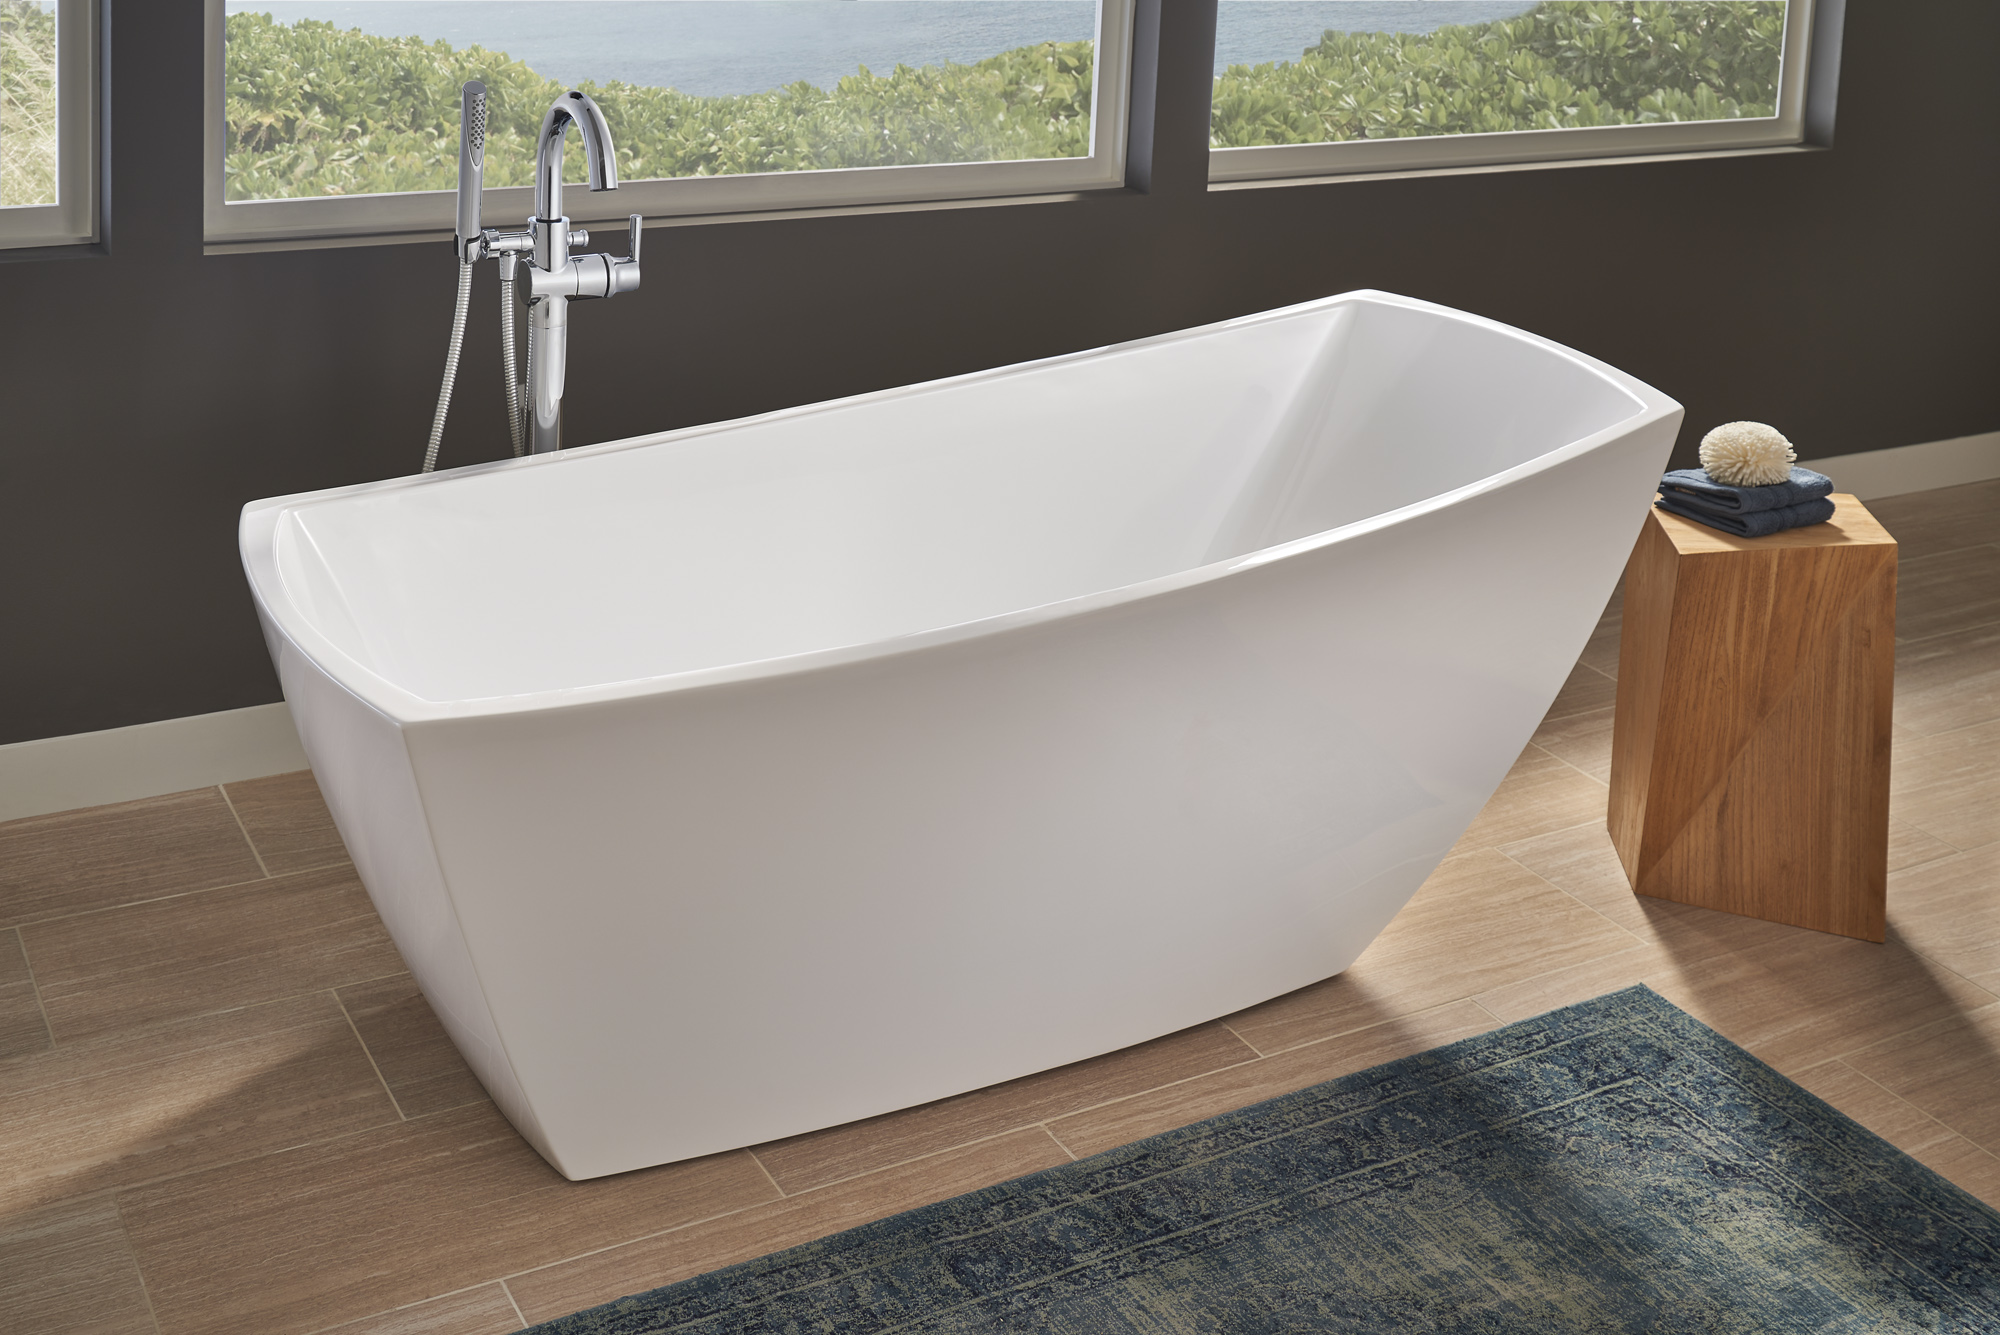 jacuzzi stella soaker tub makes a statement jlc online tubs bath jacuzzi